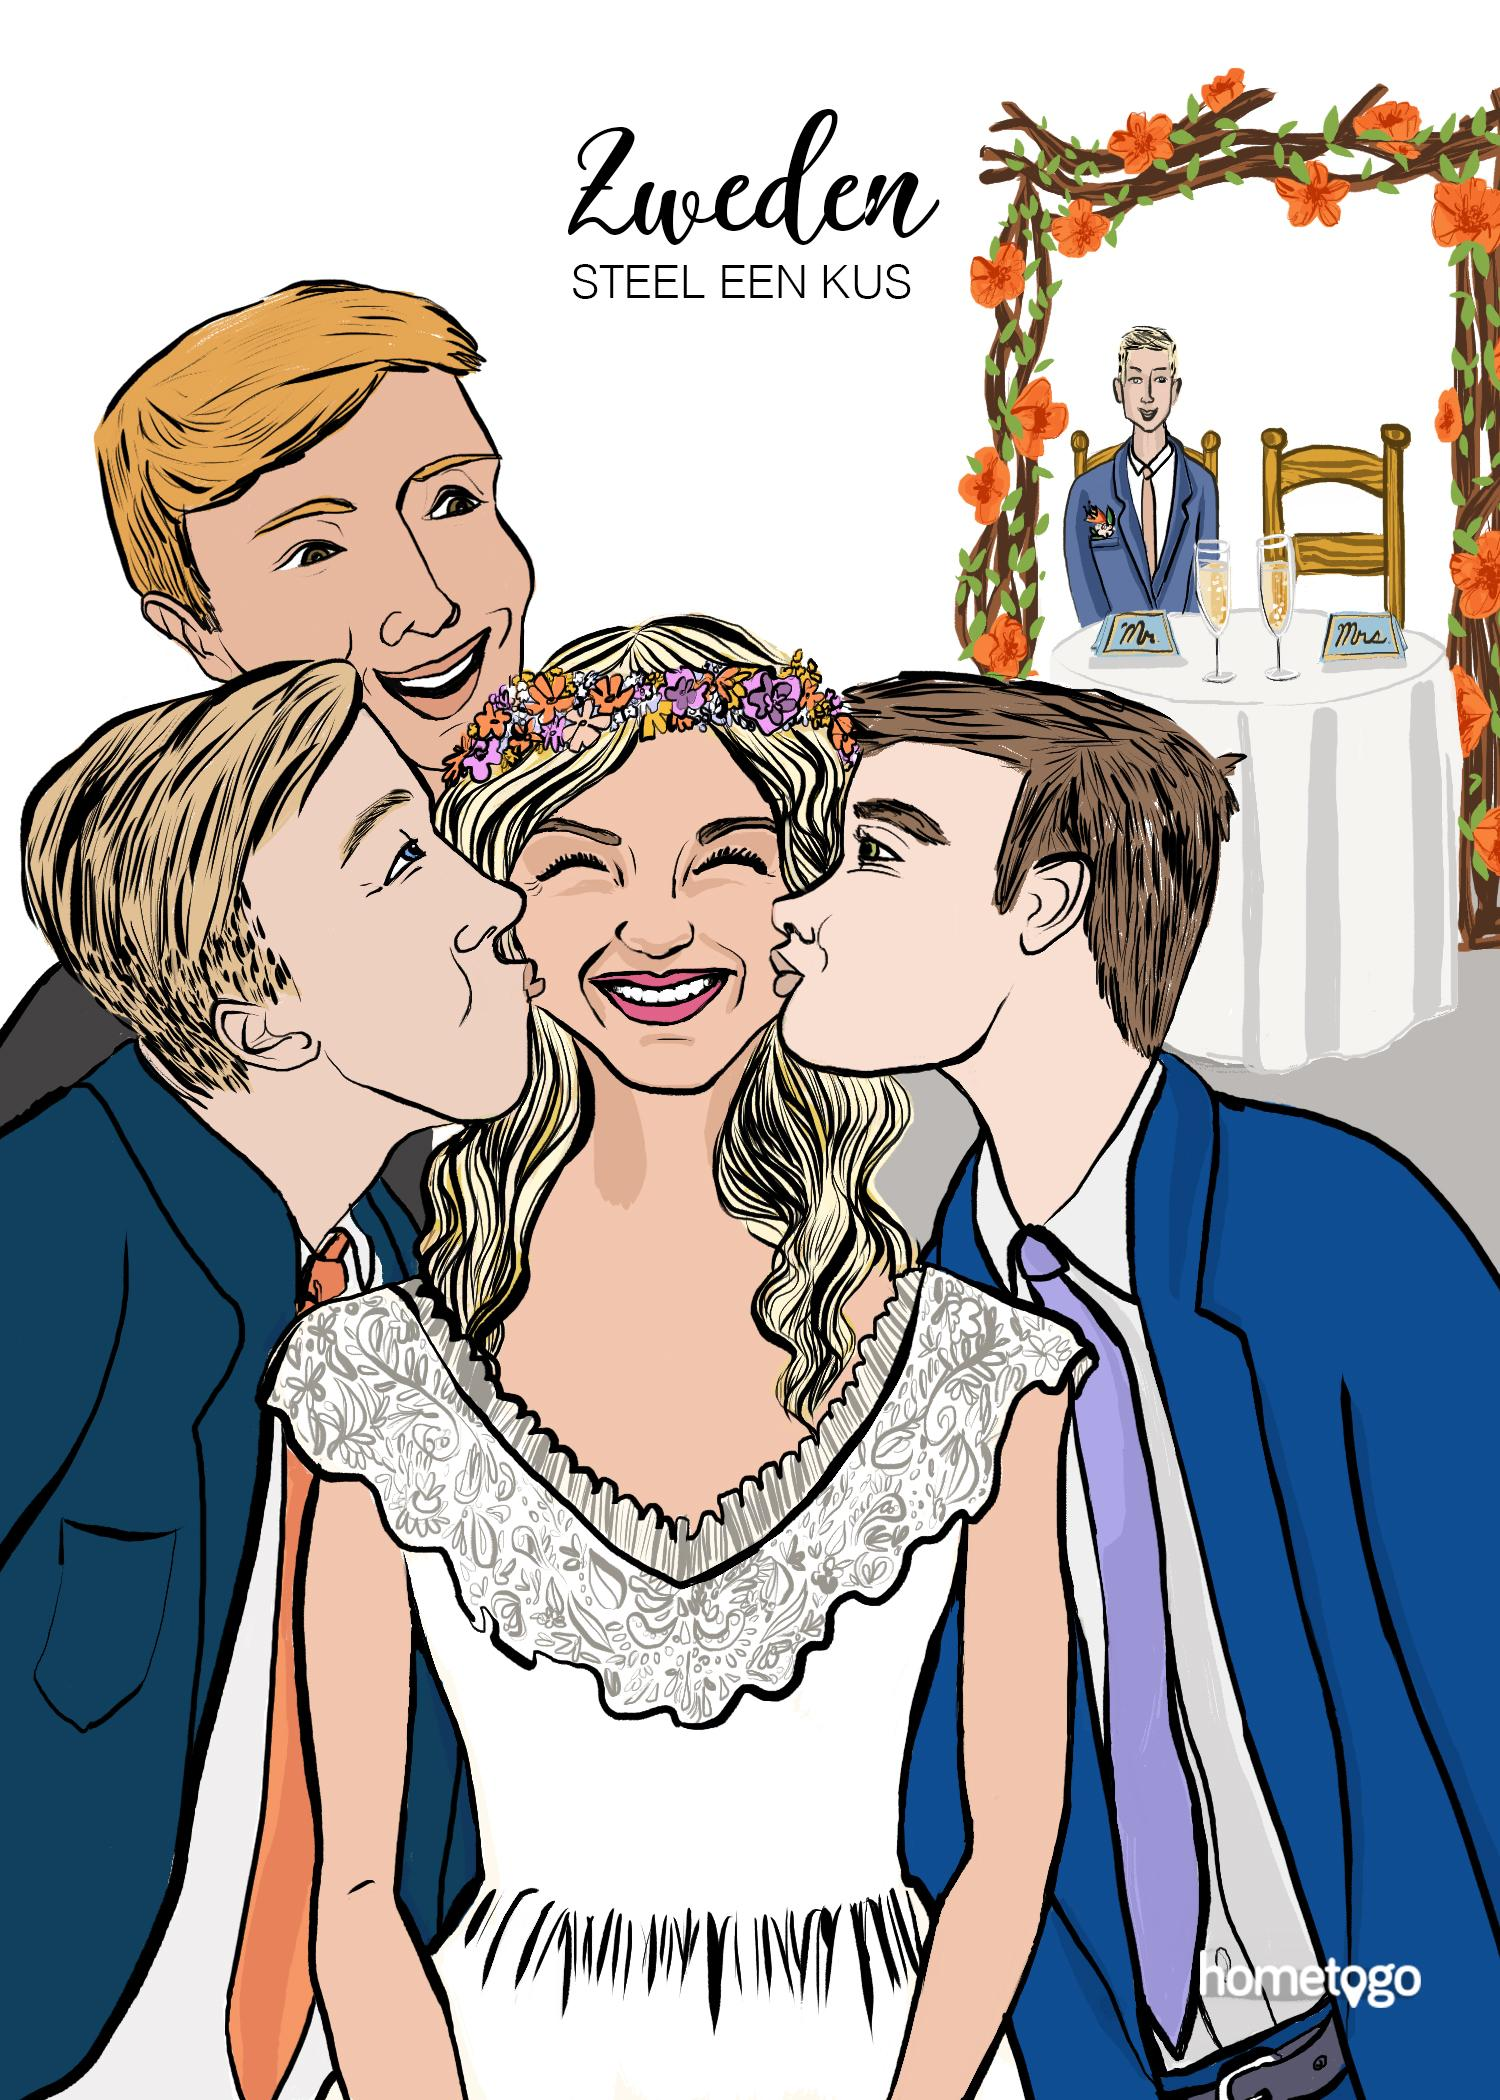 Illustration featuring the wedding custom from Sweden, where attendees steal kisses to the newlyweds